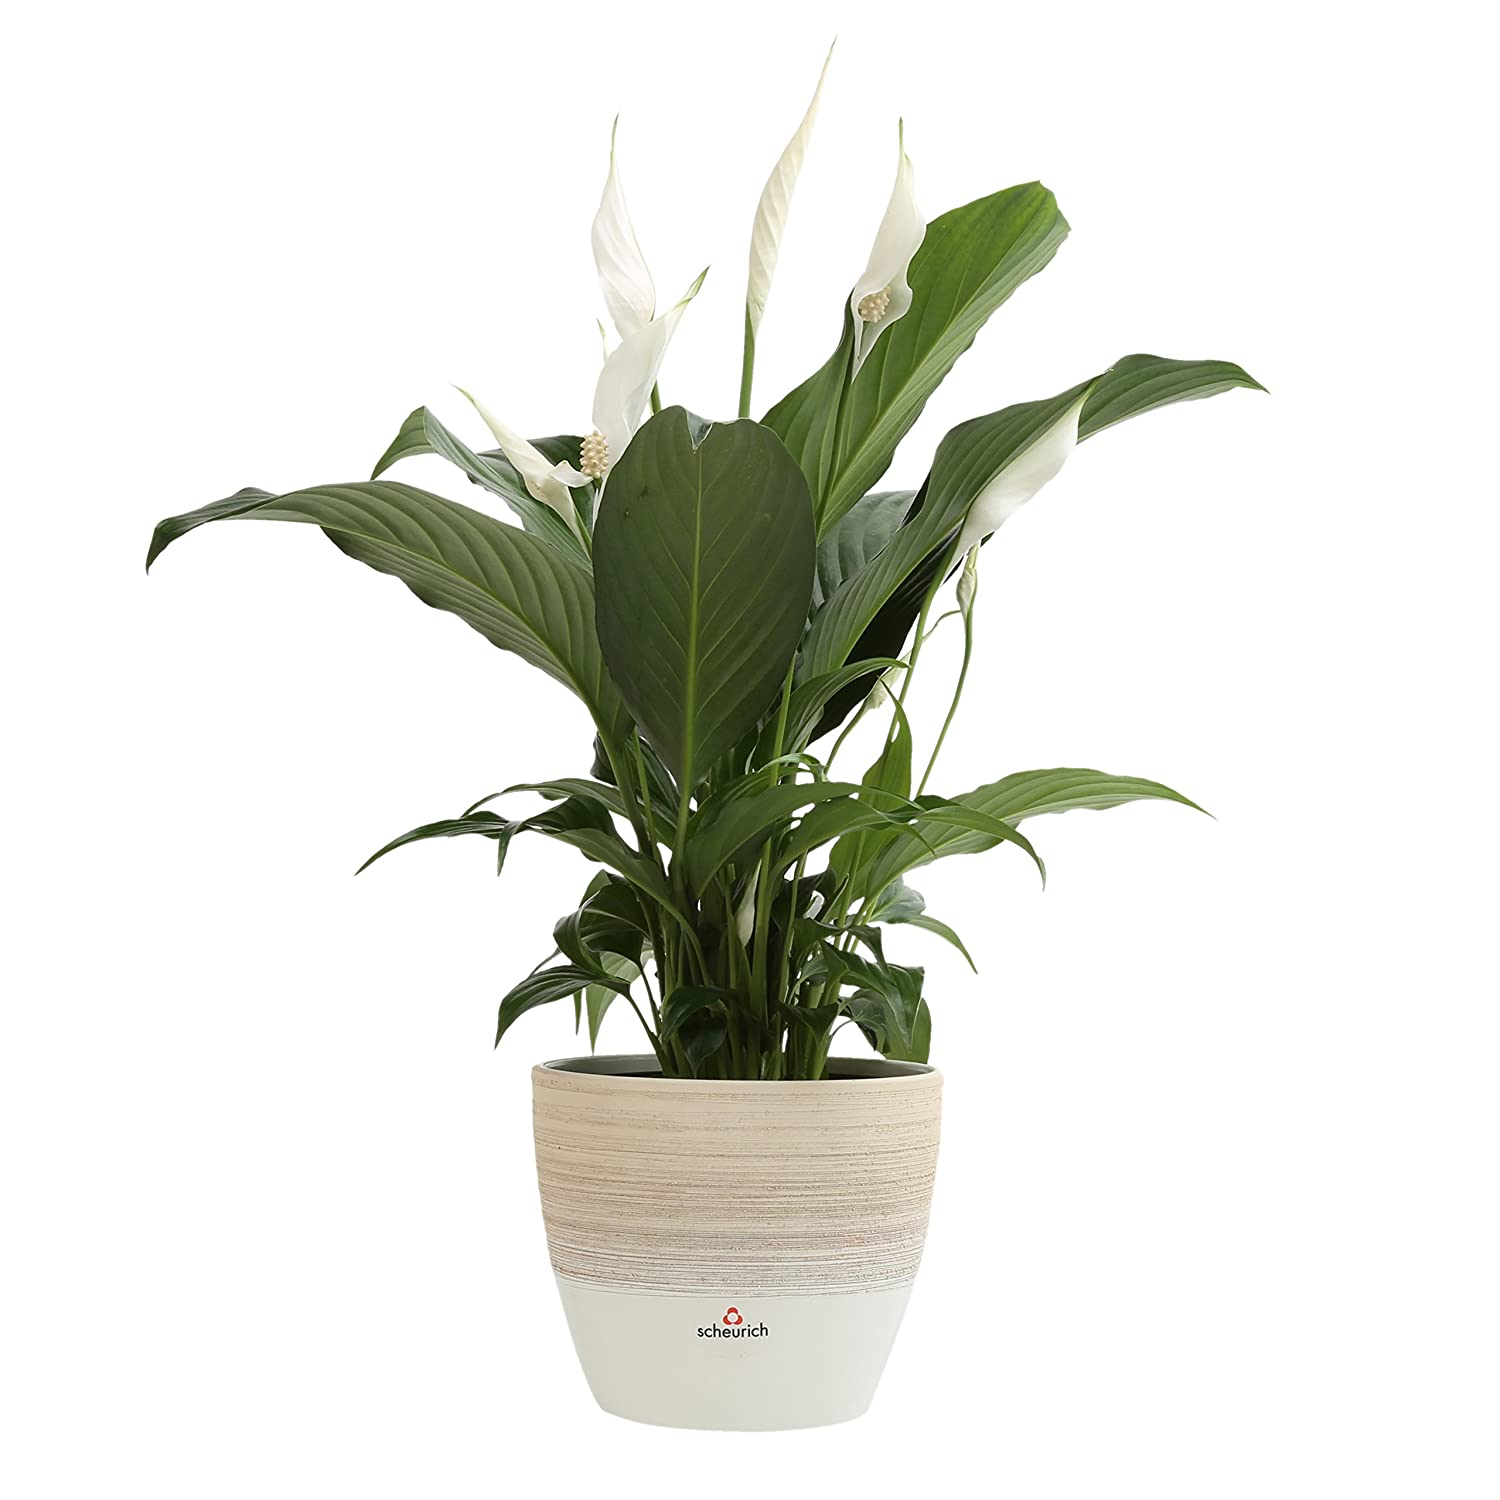 Spathiphyllum - female happiness. Growing, caring for a plant 55